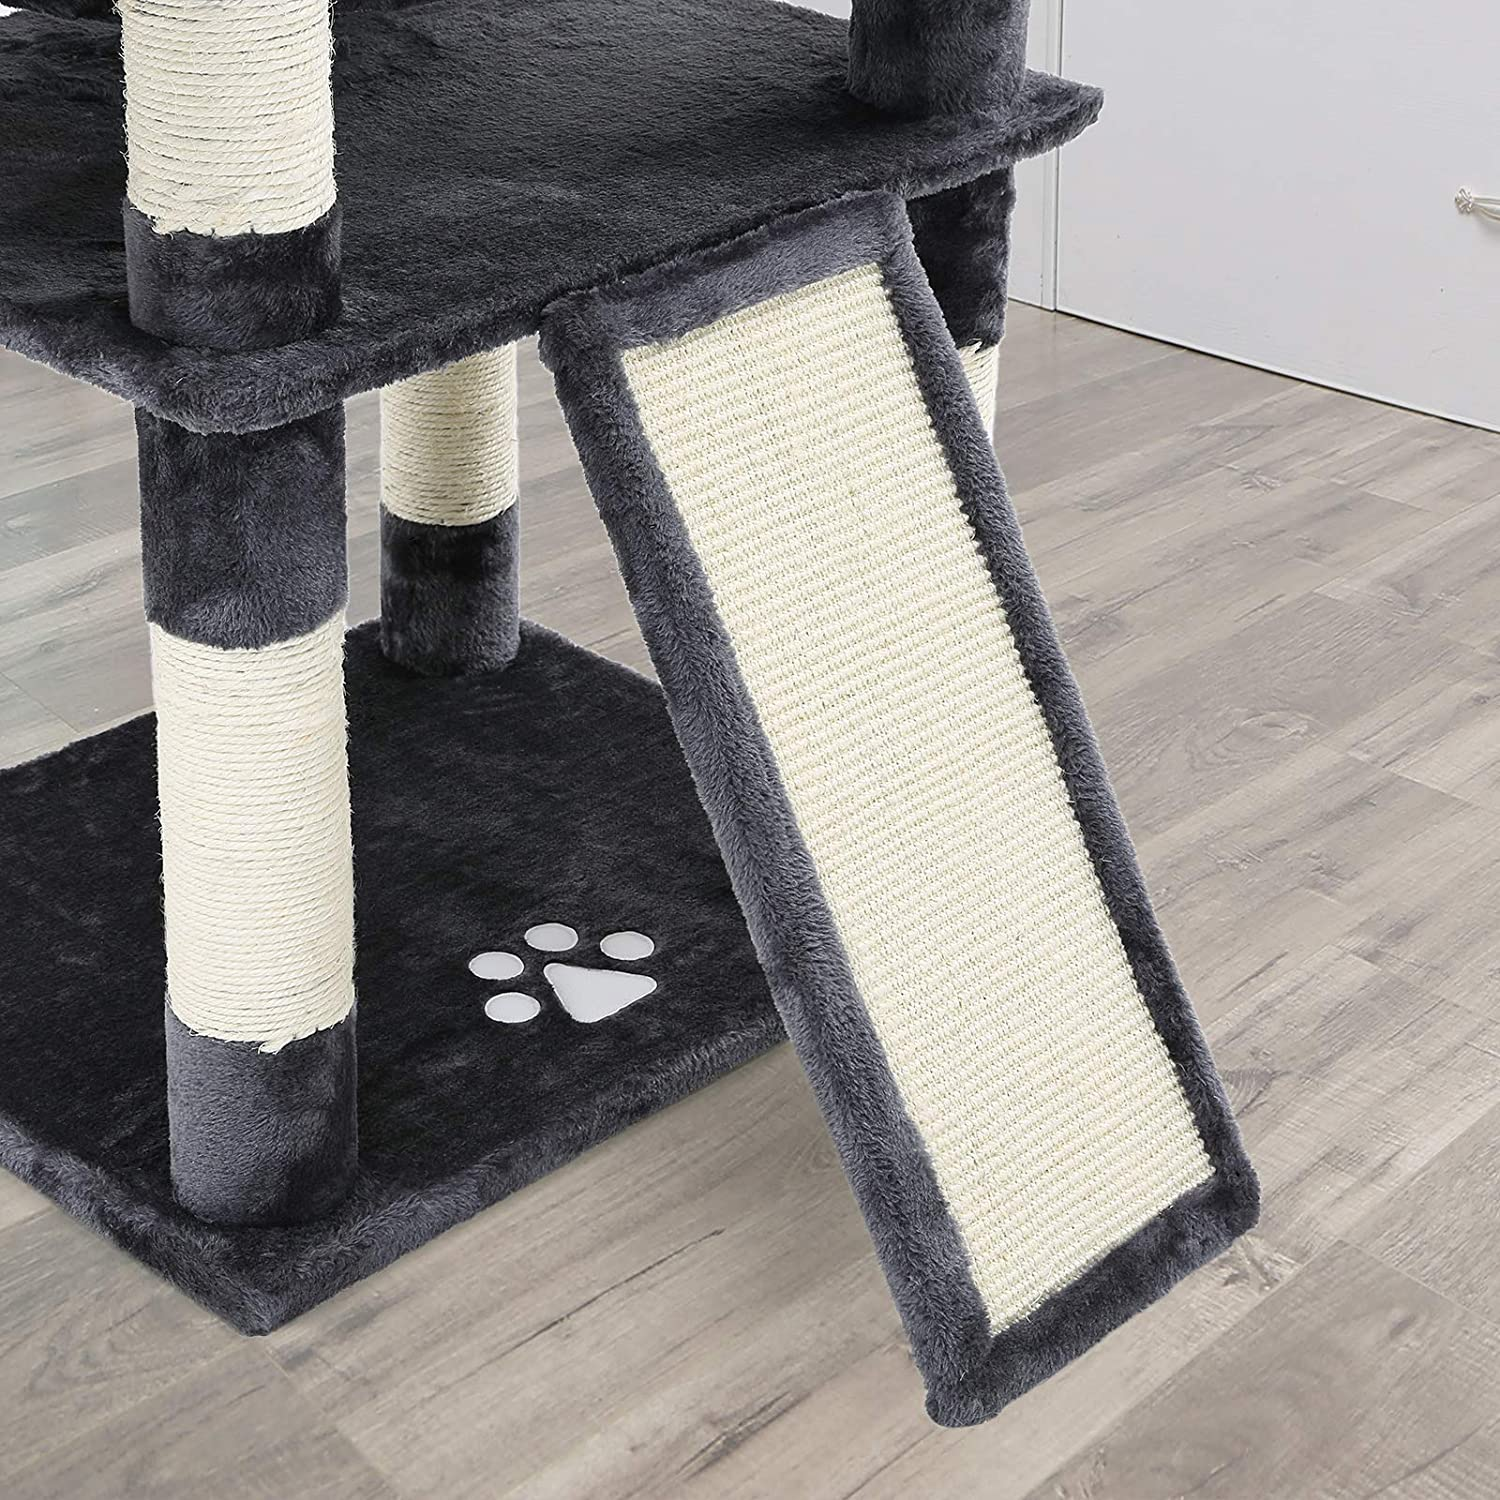 Cat Tower with 3 Comfortable Viewing Perches Extra Scratch Board Smoky Grey PCT18GYZ Thick Sisal Posts 172 cm Stable FEANDREA Big Cat Tree Cat Condo with 2 Cuddly Caves